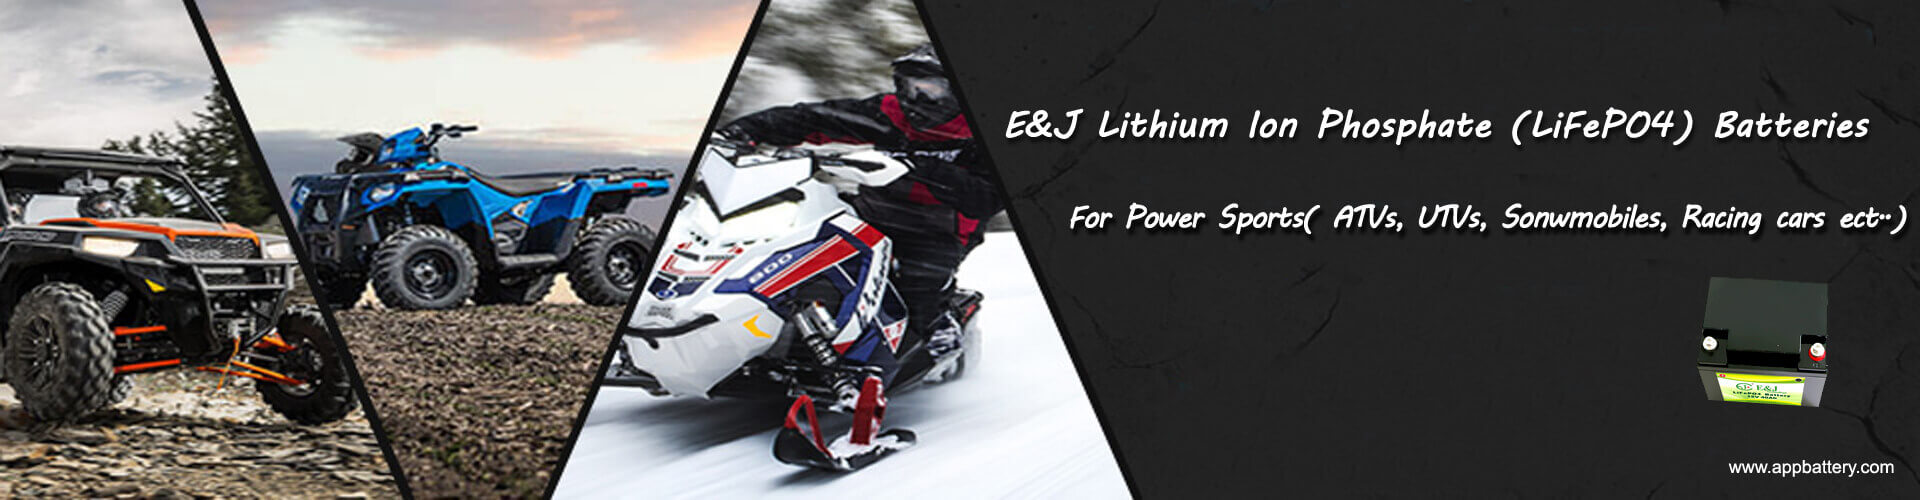 Lithium iron phosphate lifepo4 batteries ATVs, UTVs, Snowmobiles, Race cars power sports_banner